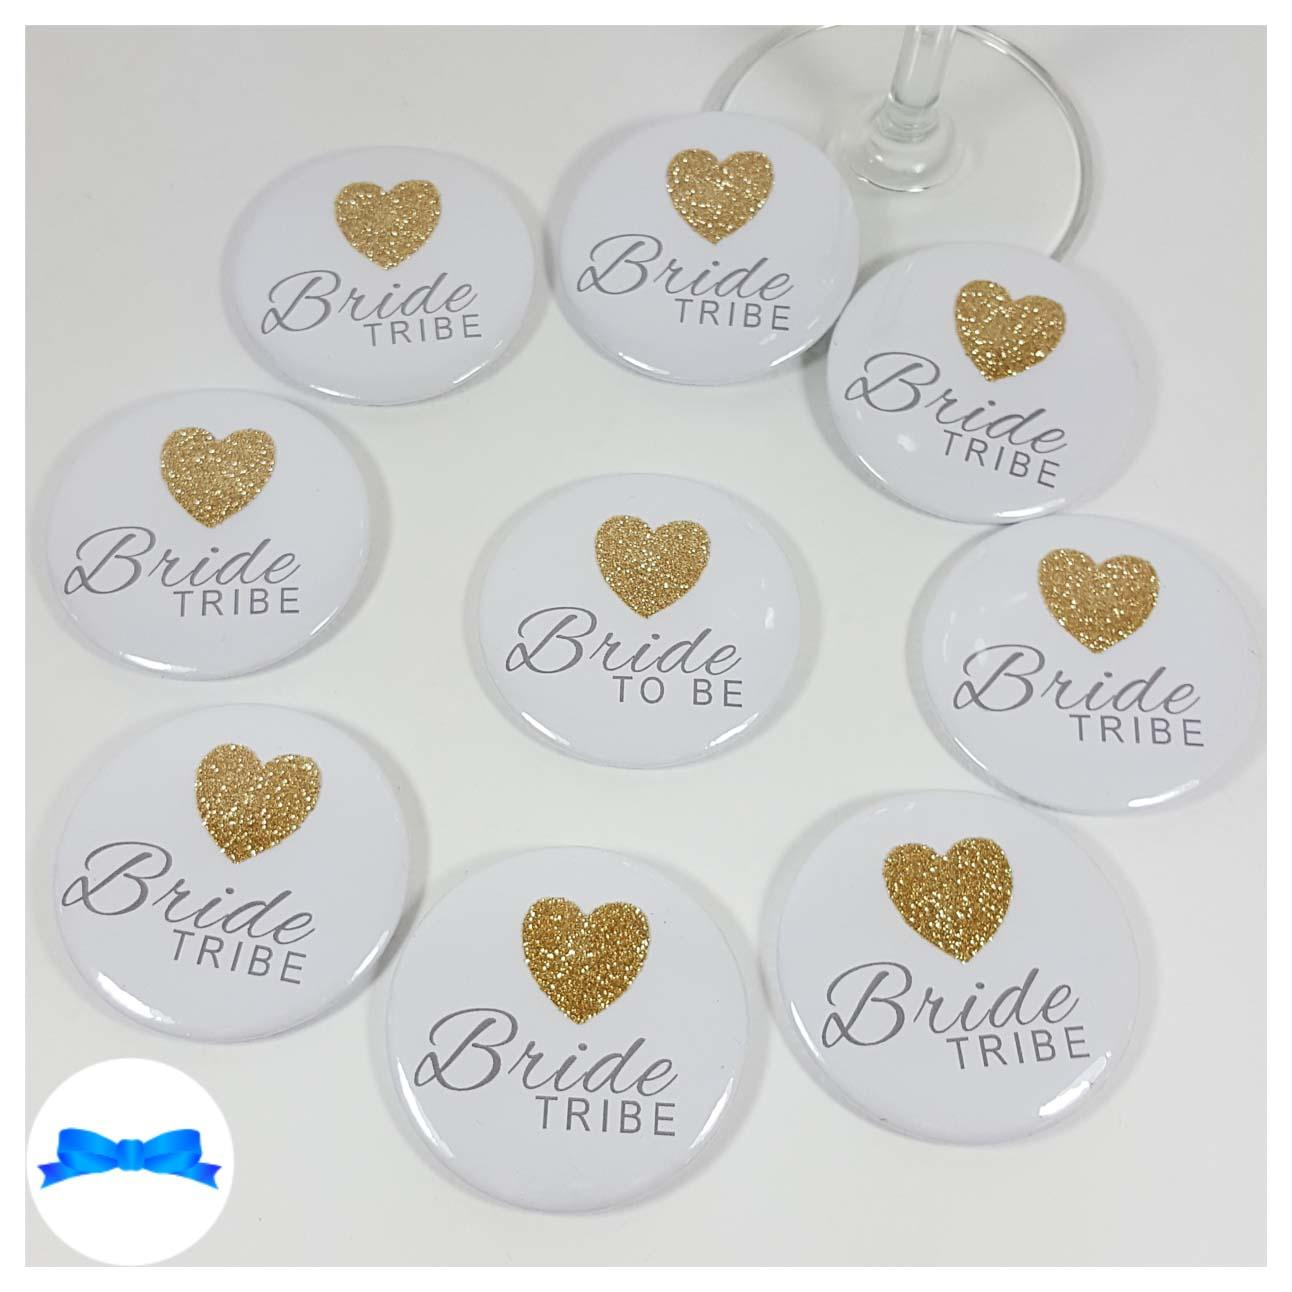 Bride to be badge and gold glitter badges